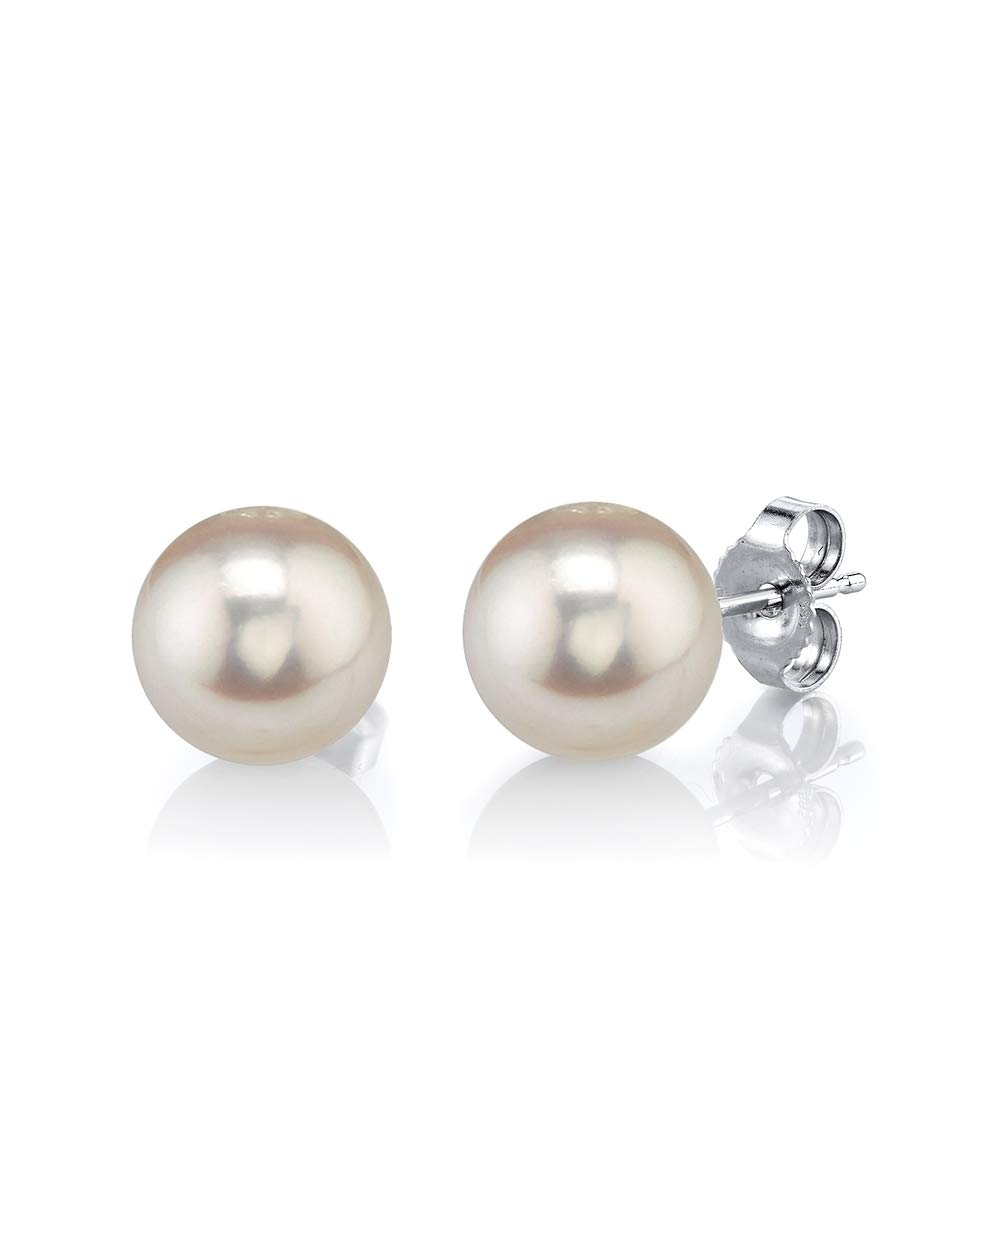 14K Gold 7-8mm Round White Freshwater Cultured Pearl Stud Earrings for Women